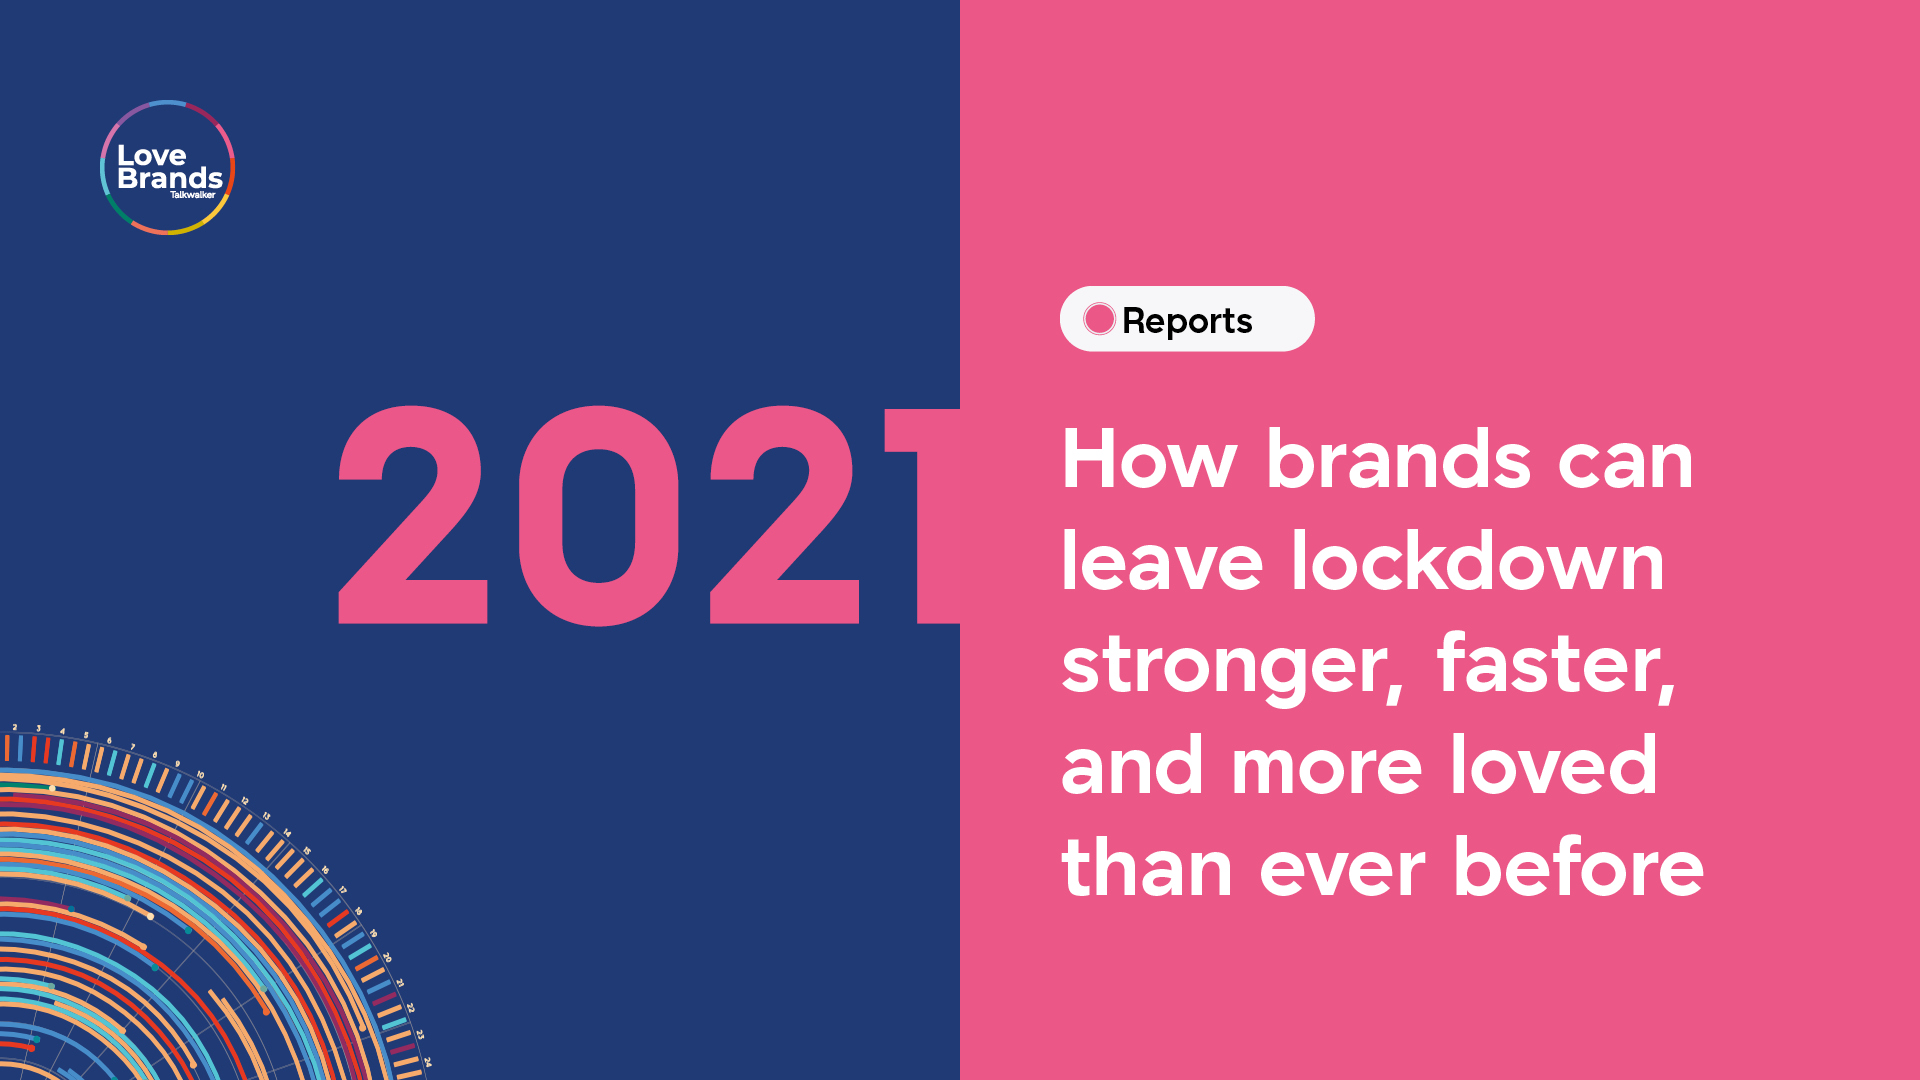 Brand Love Story 2021 - How to profit from love in a lockdown